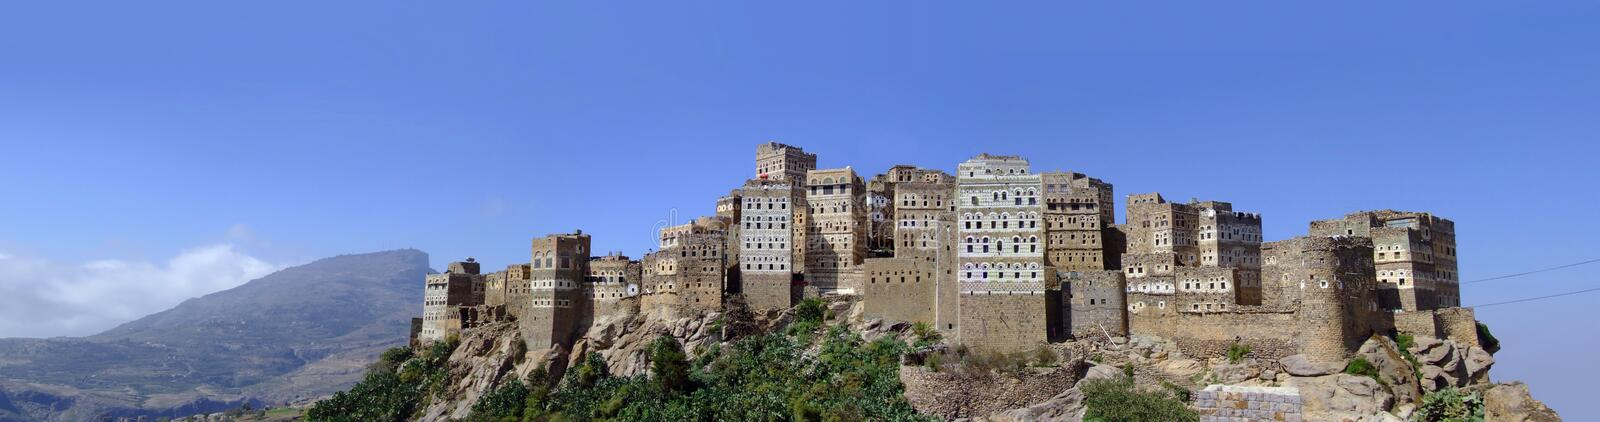 Village panorama in Al Hajarah , Sana'a, Yemen stock photo